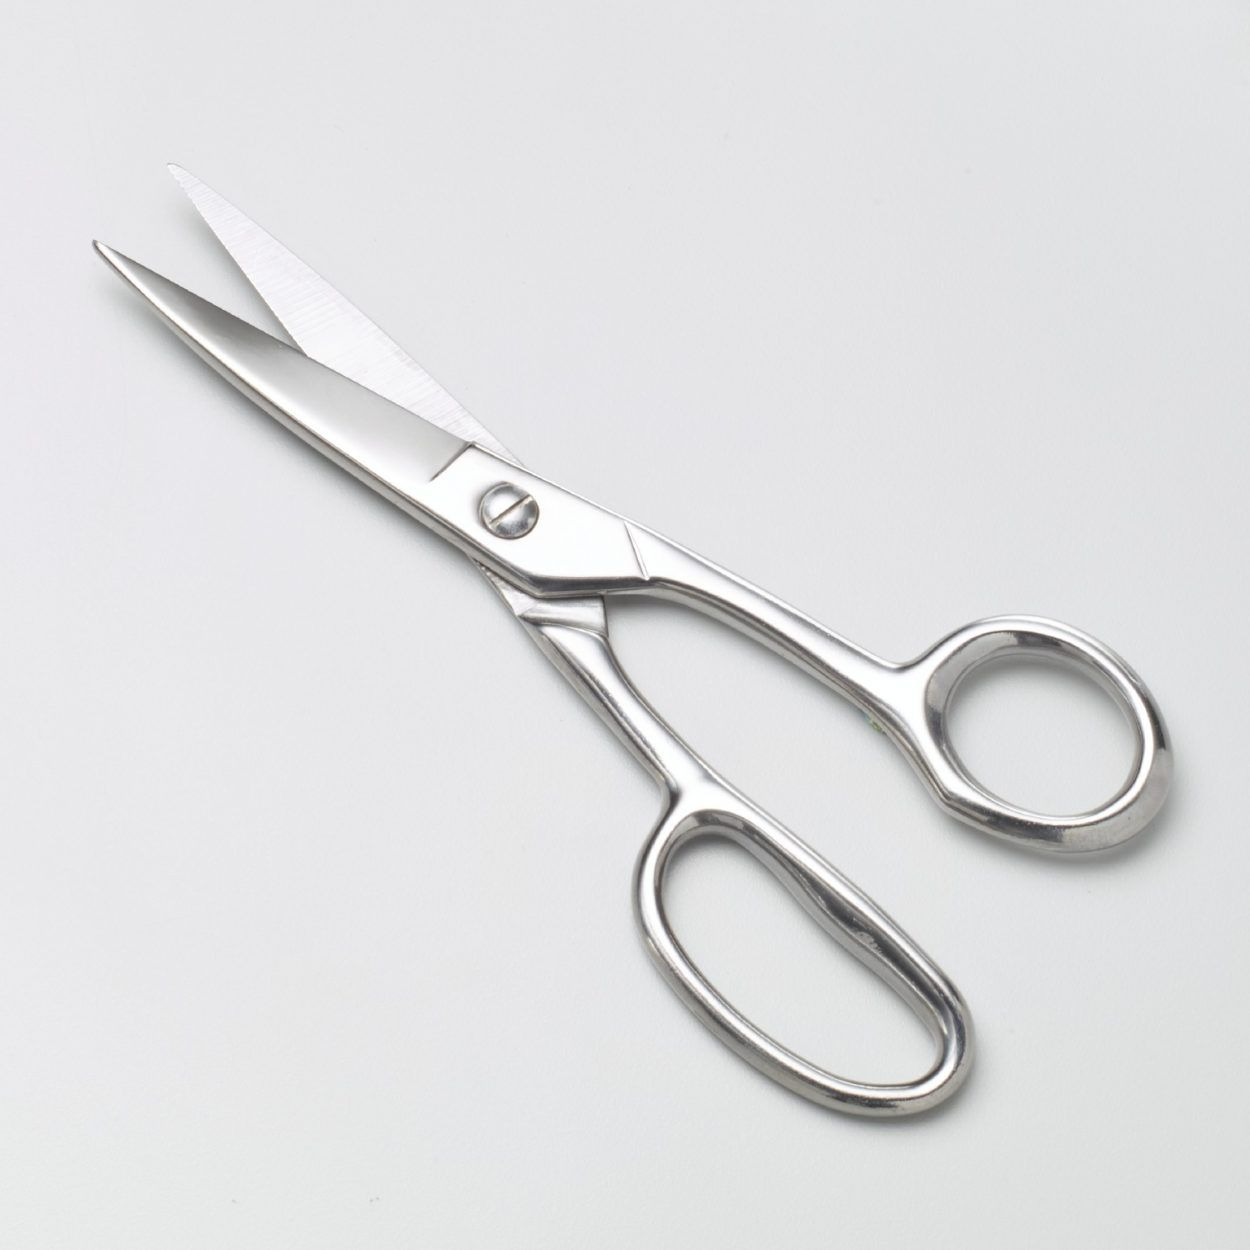 Curved Shears